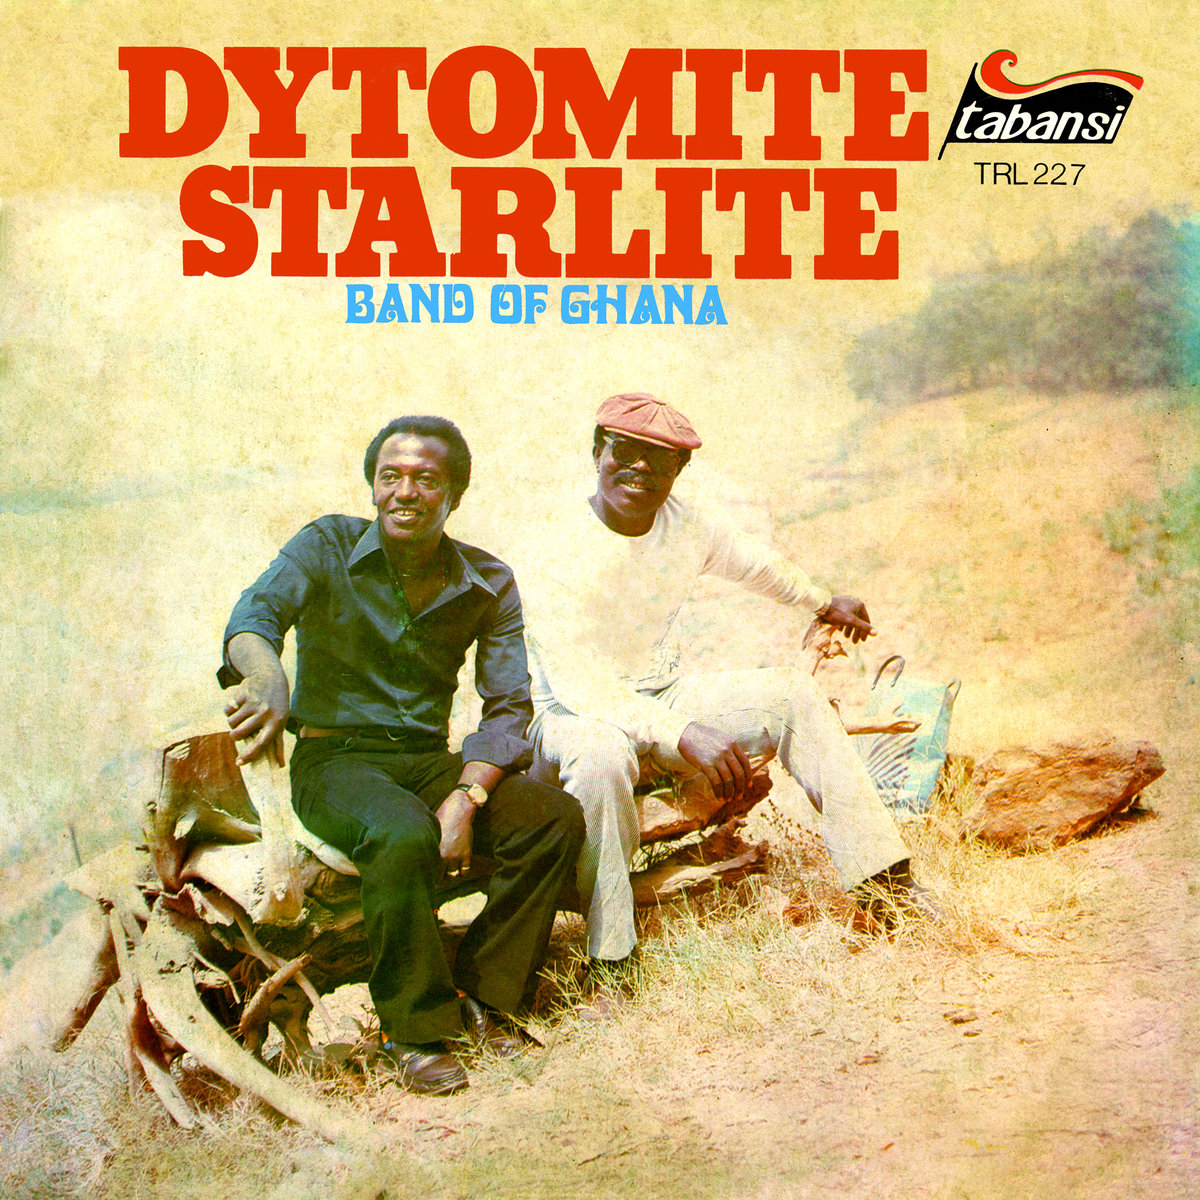 Dytomite Starlite Band of Ghana -BUYTHEWAX